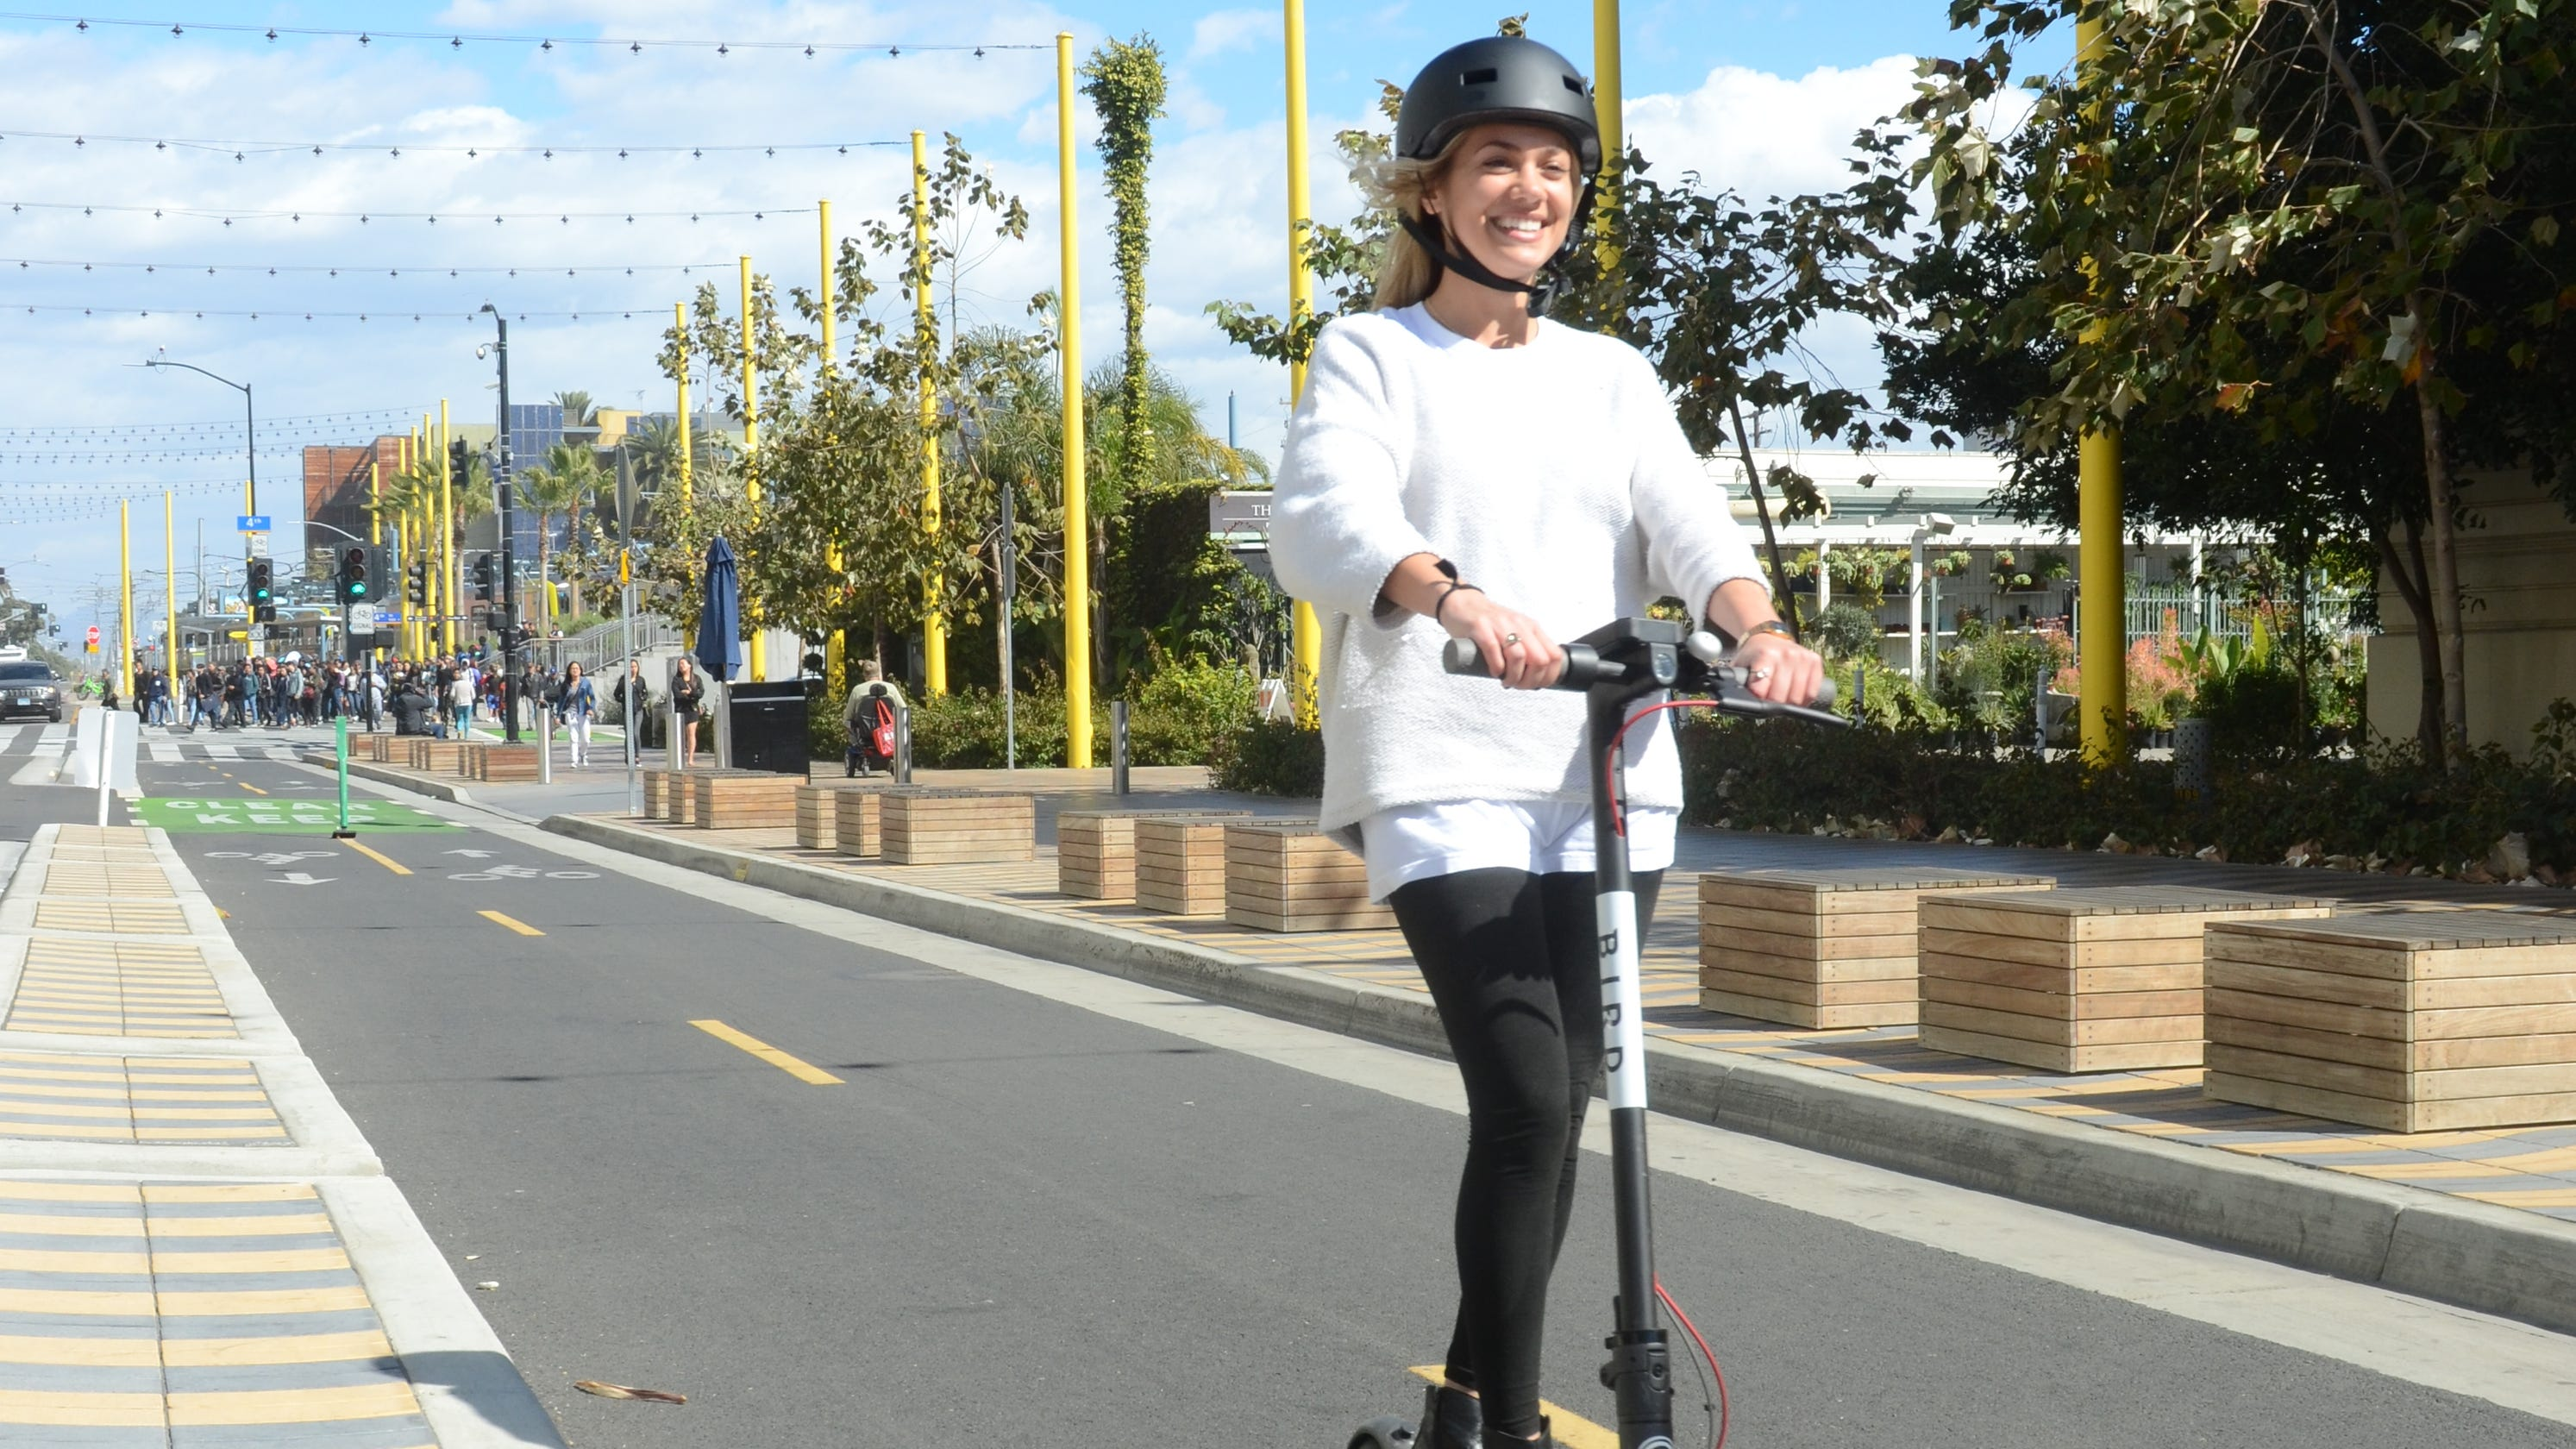 Electric Scooters Coming To The Streets Of Thousand Oaks